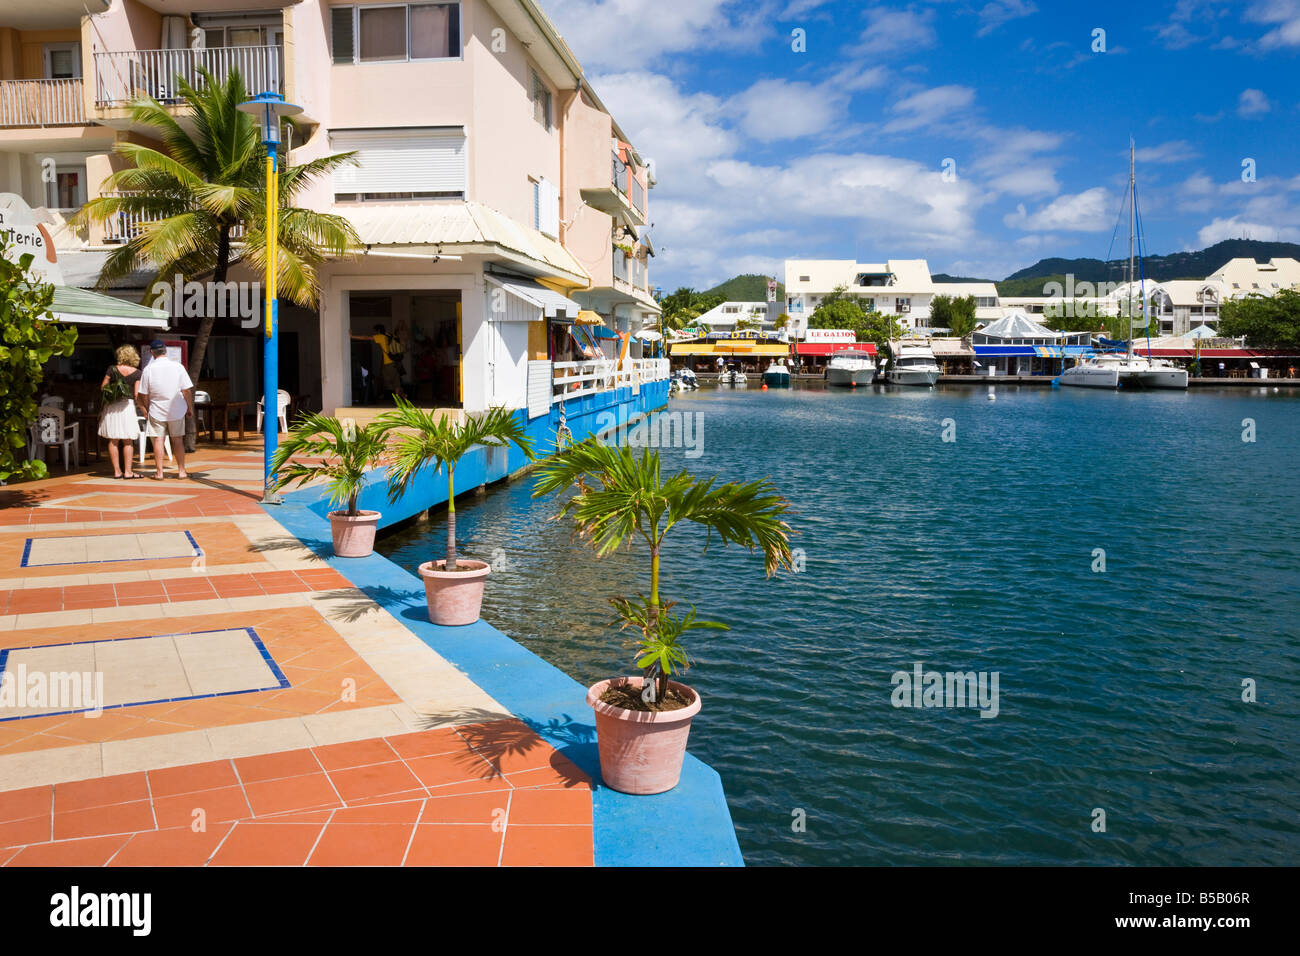 Marina port la royale in french marigot st martin - Marina port la royale marigot st martin ...